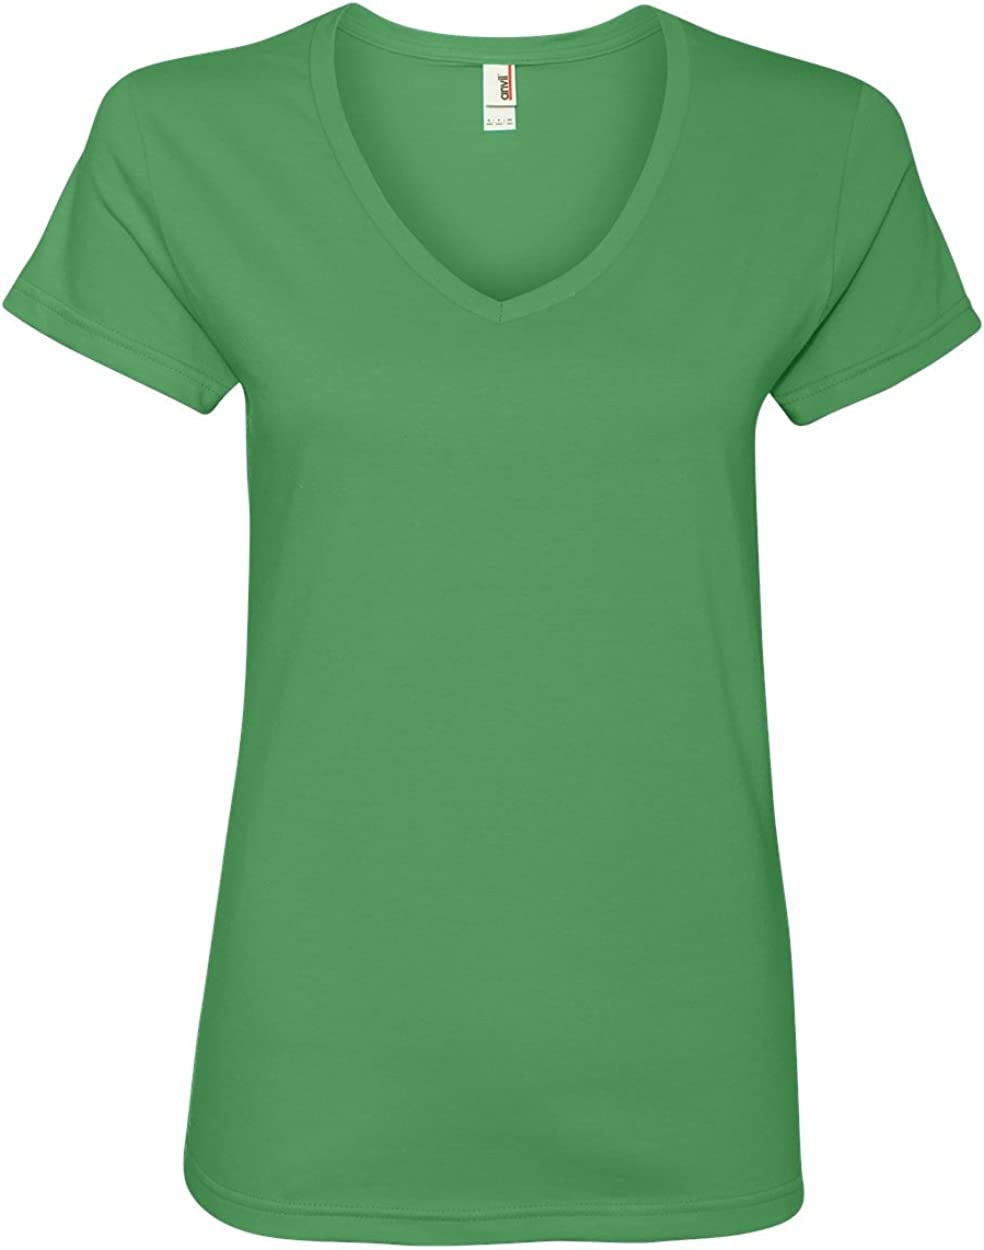 Anvil 88VL - Missy Fit Ringspun V-Neck T-Shirt